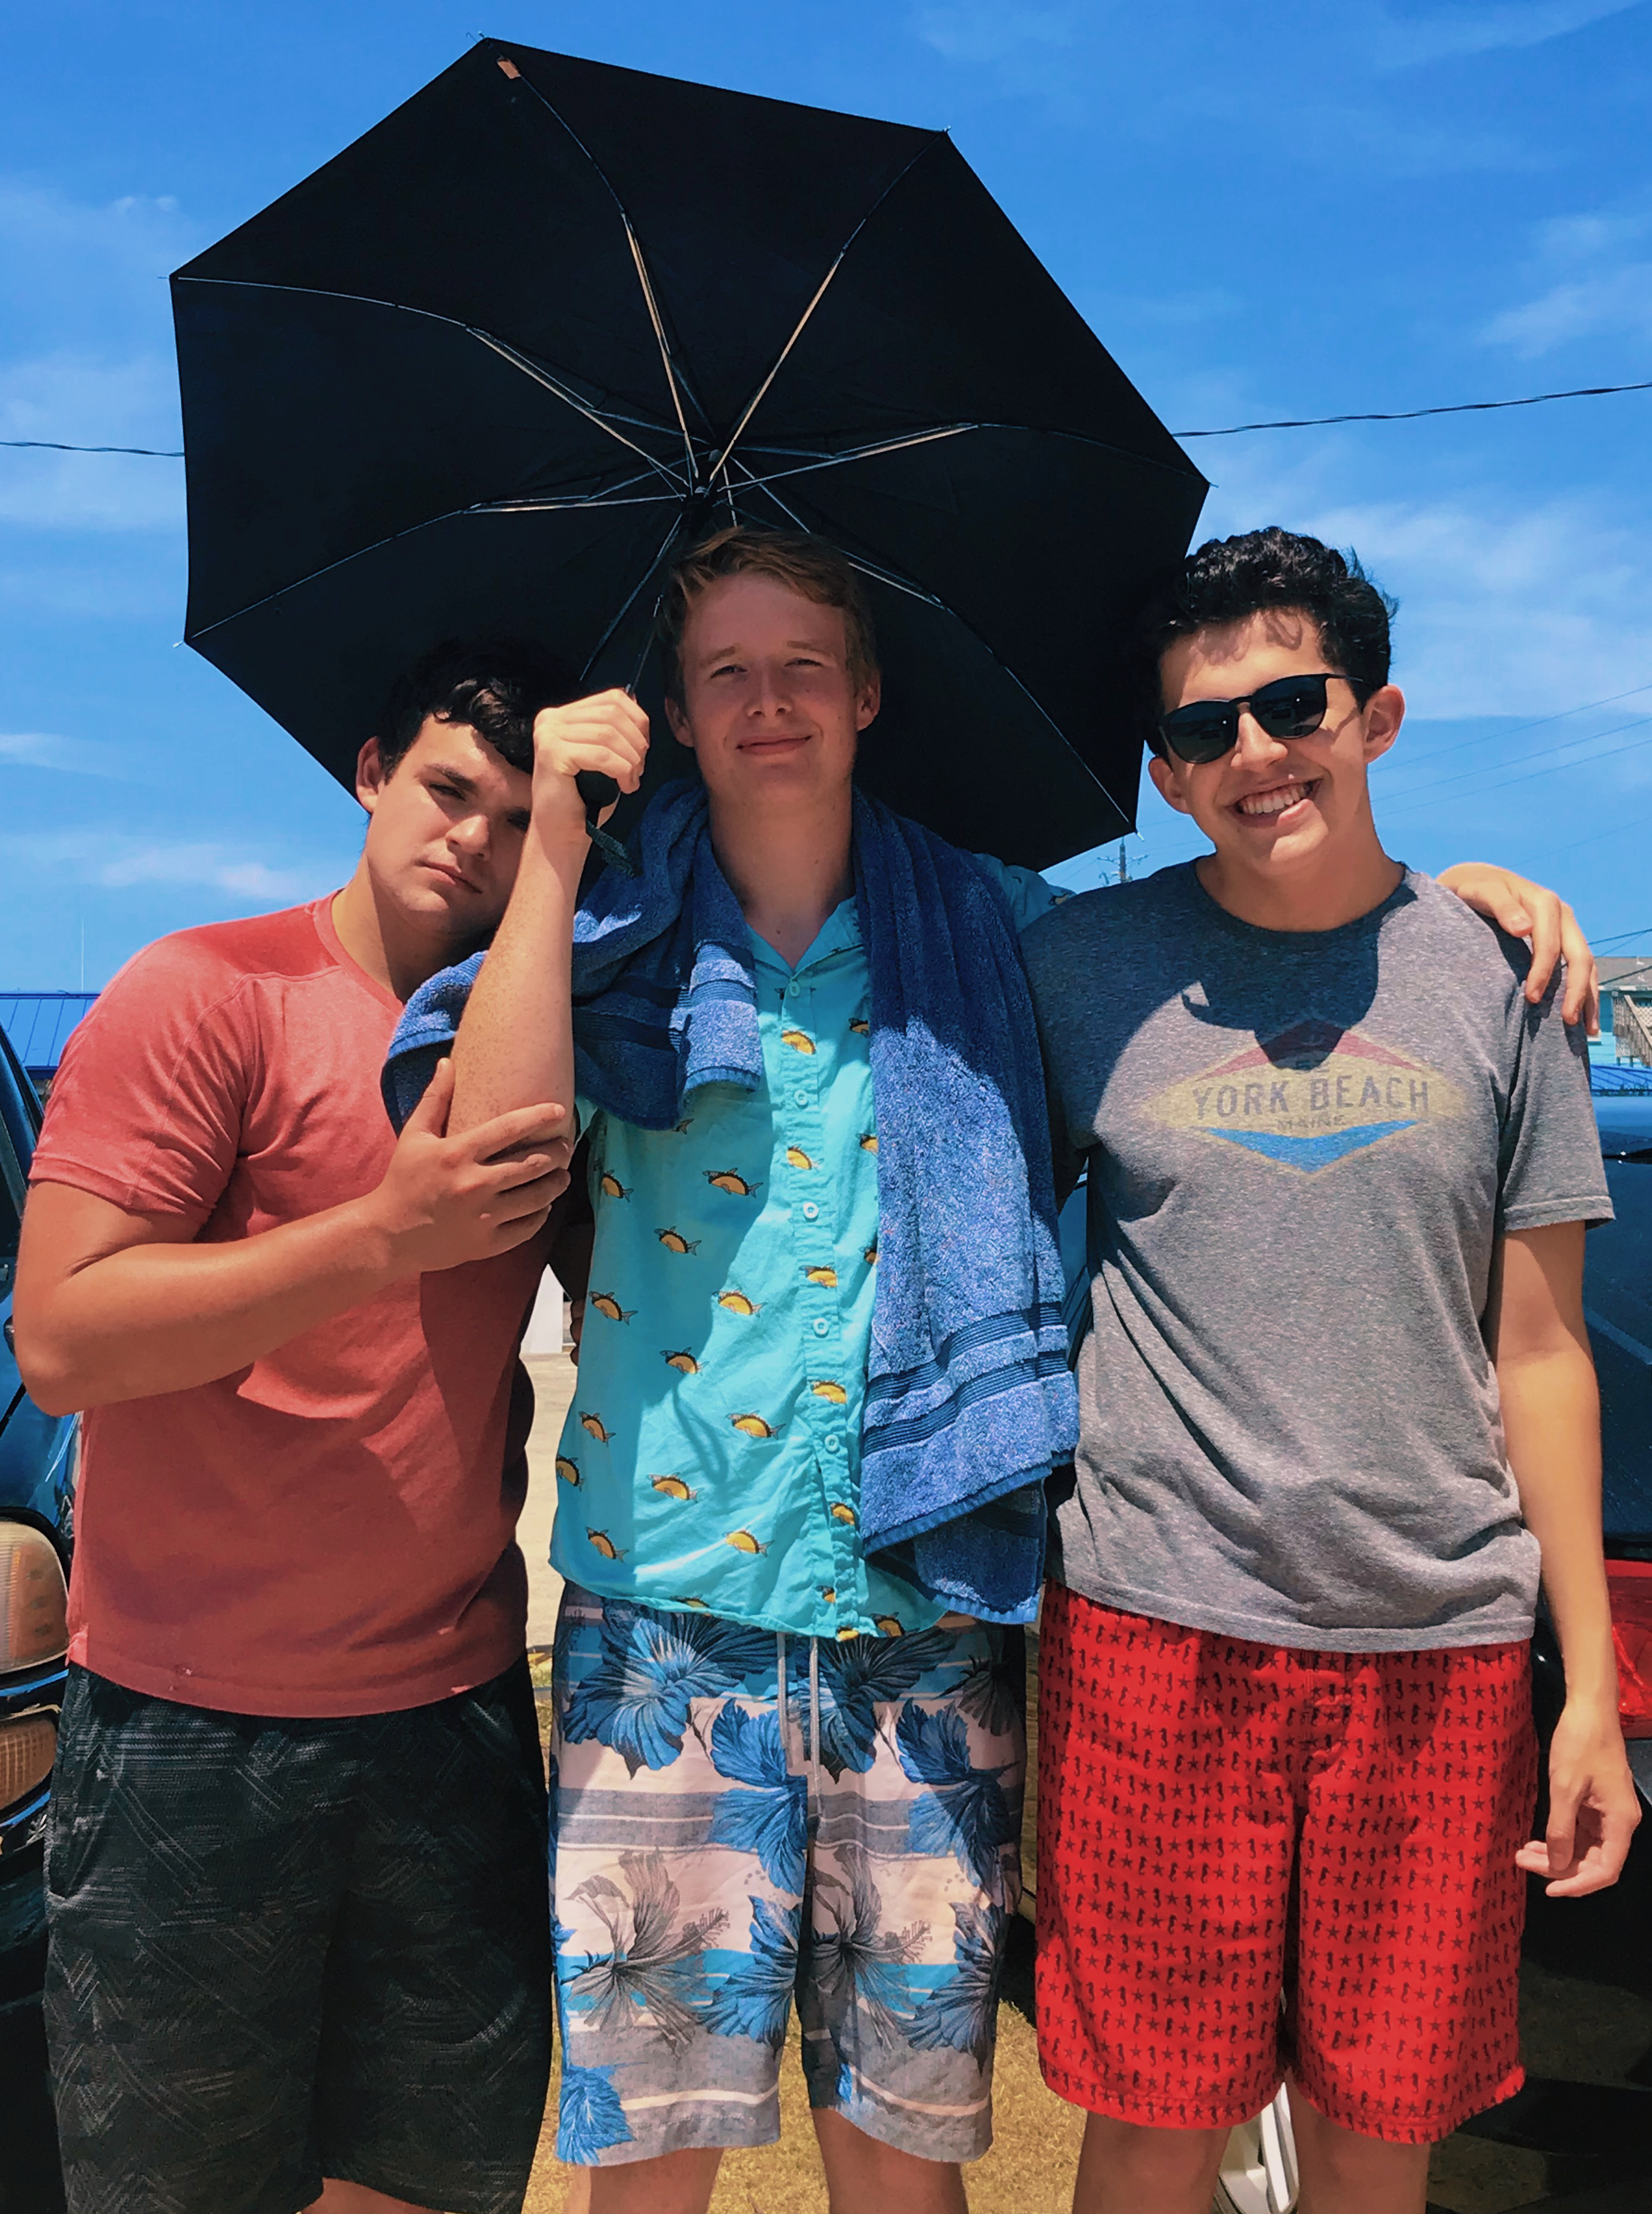 Calvin standing with two friends underneath umbrella smiling